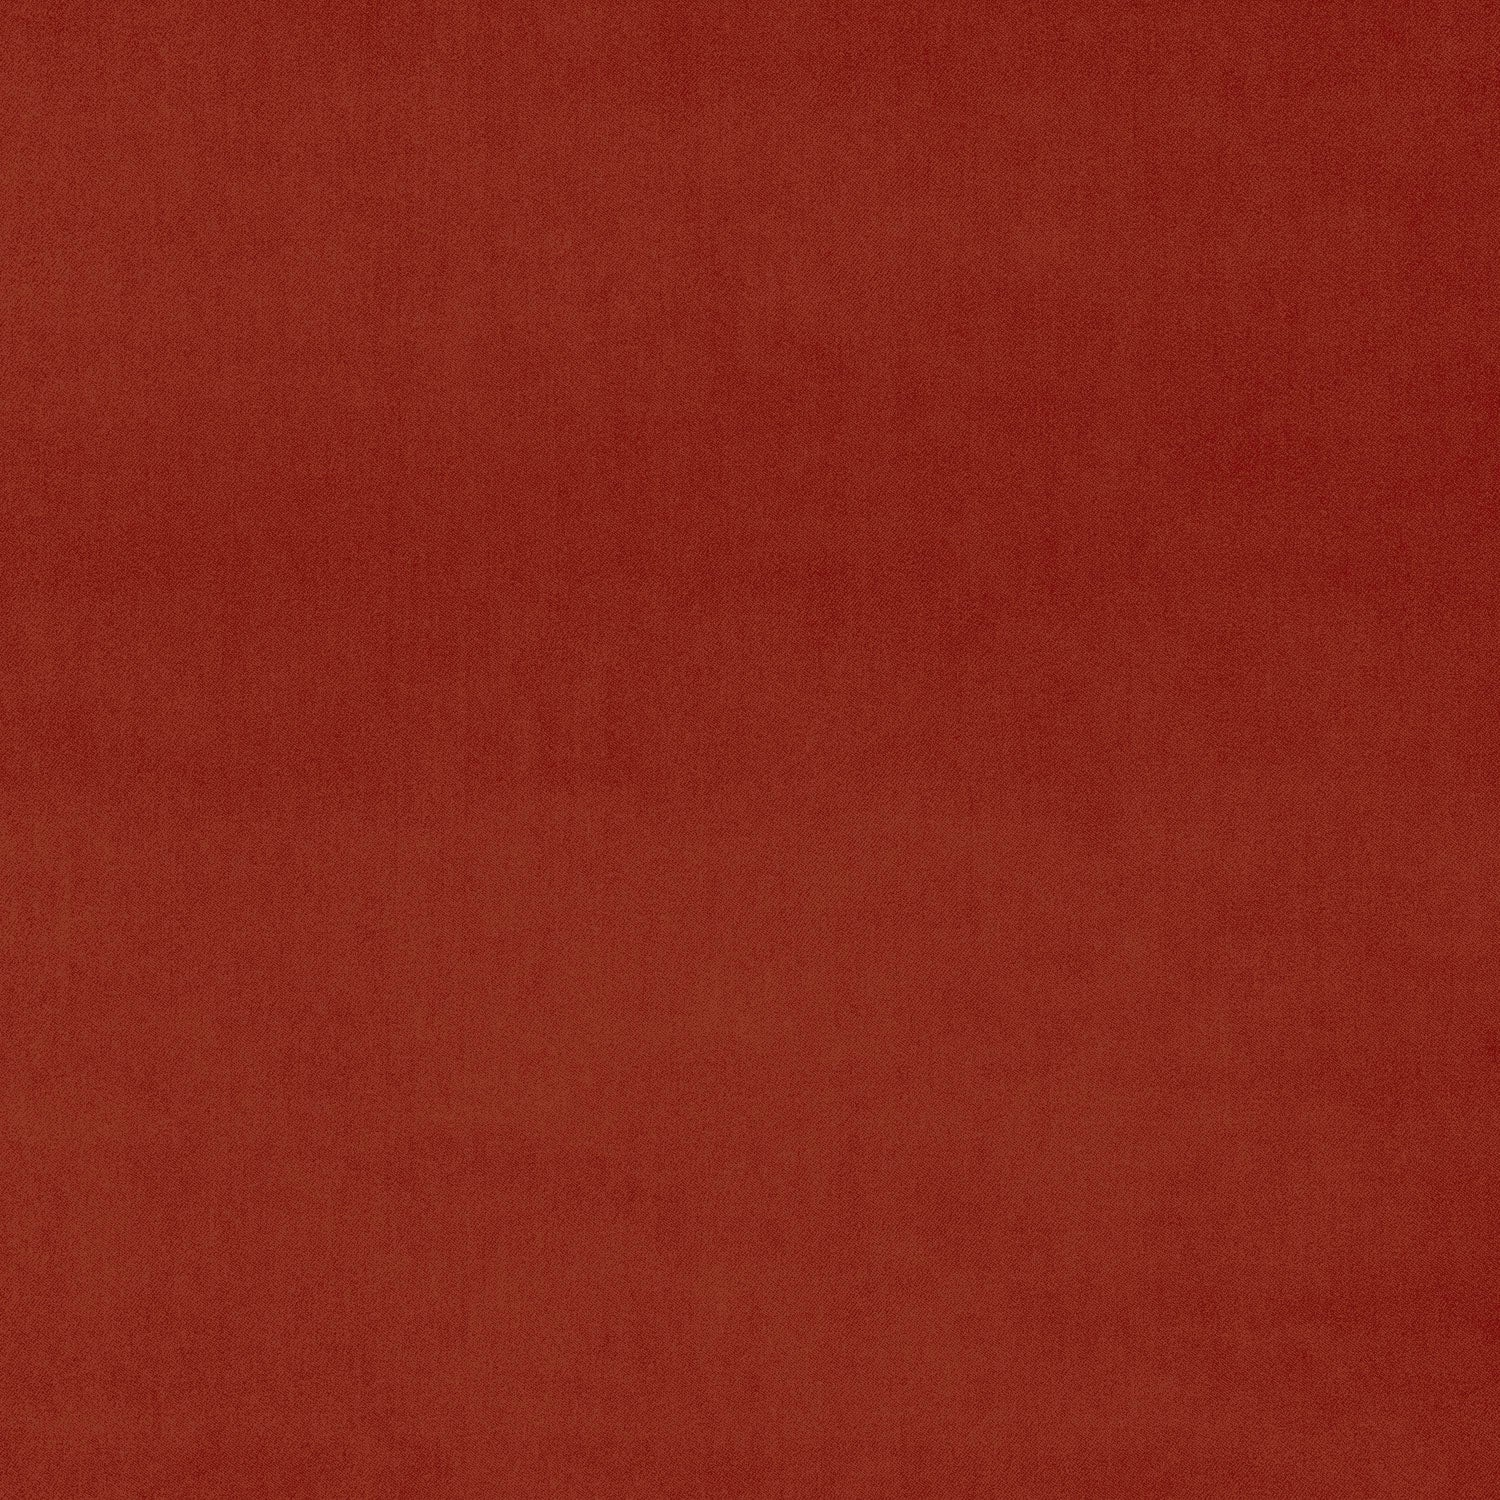 Luxury plain velvet fabric in a dark orange colour for curtains and upholstery